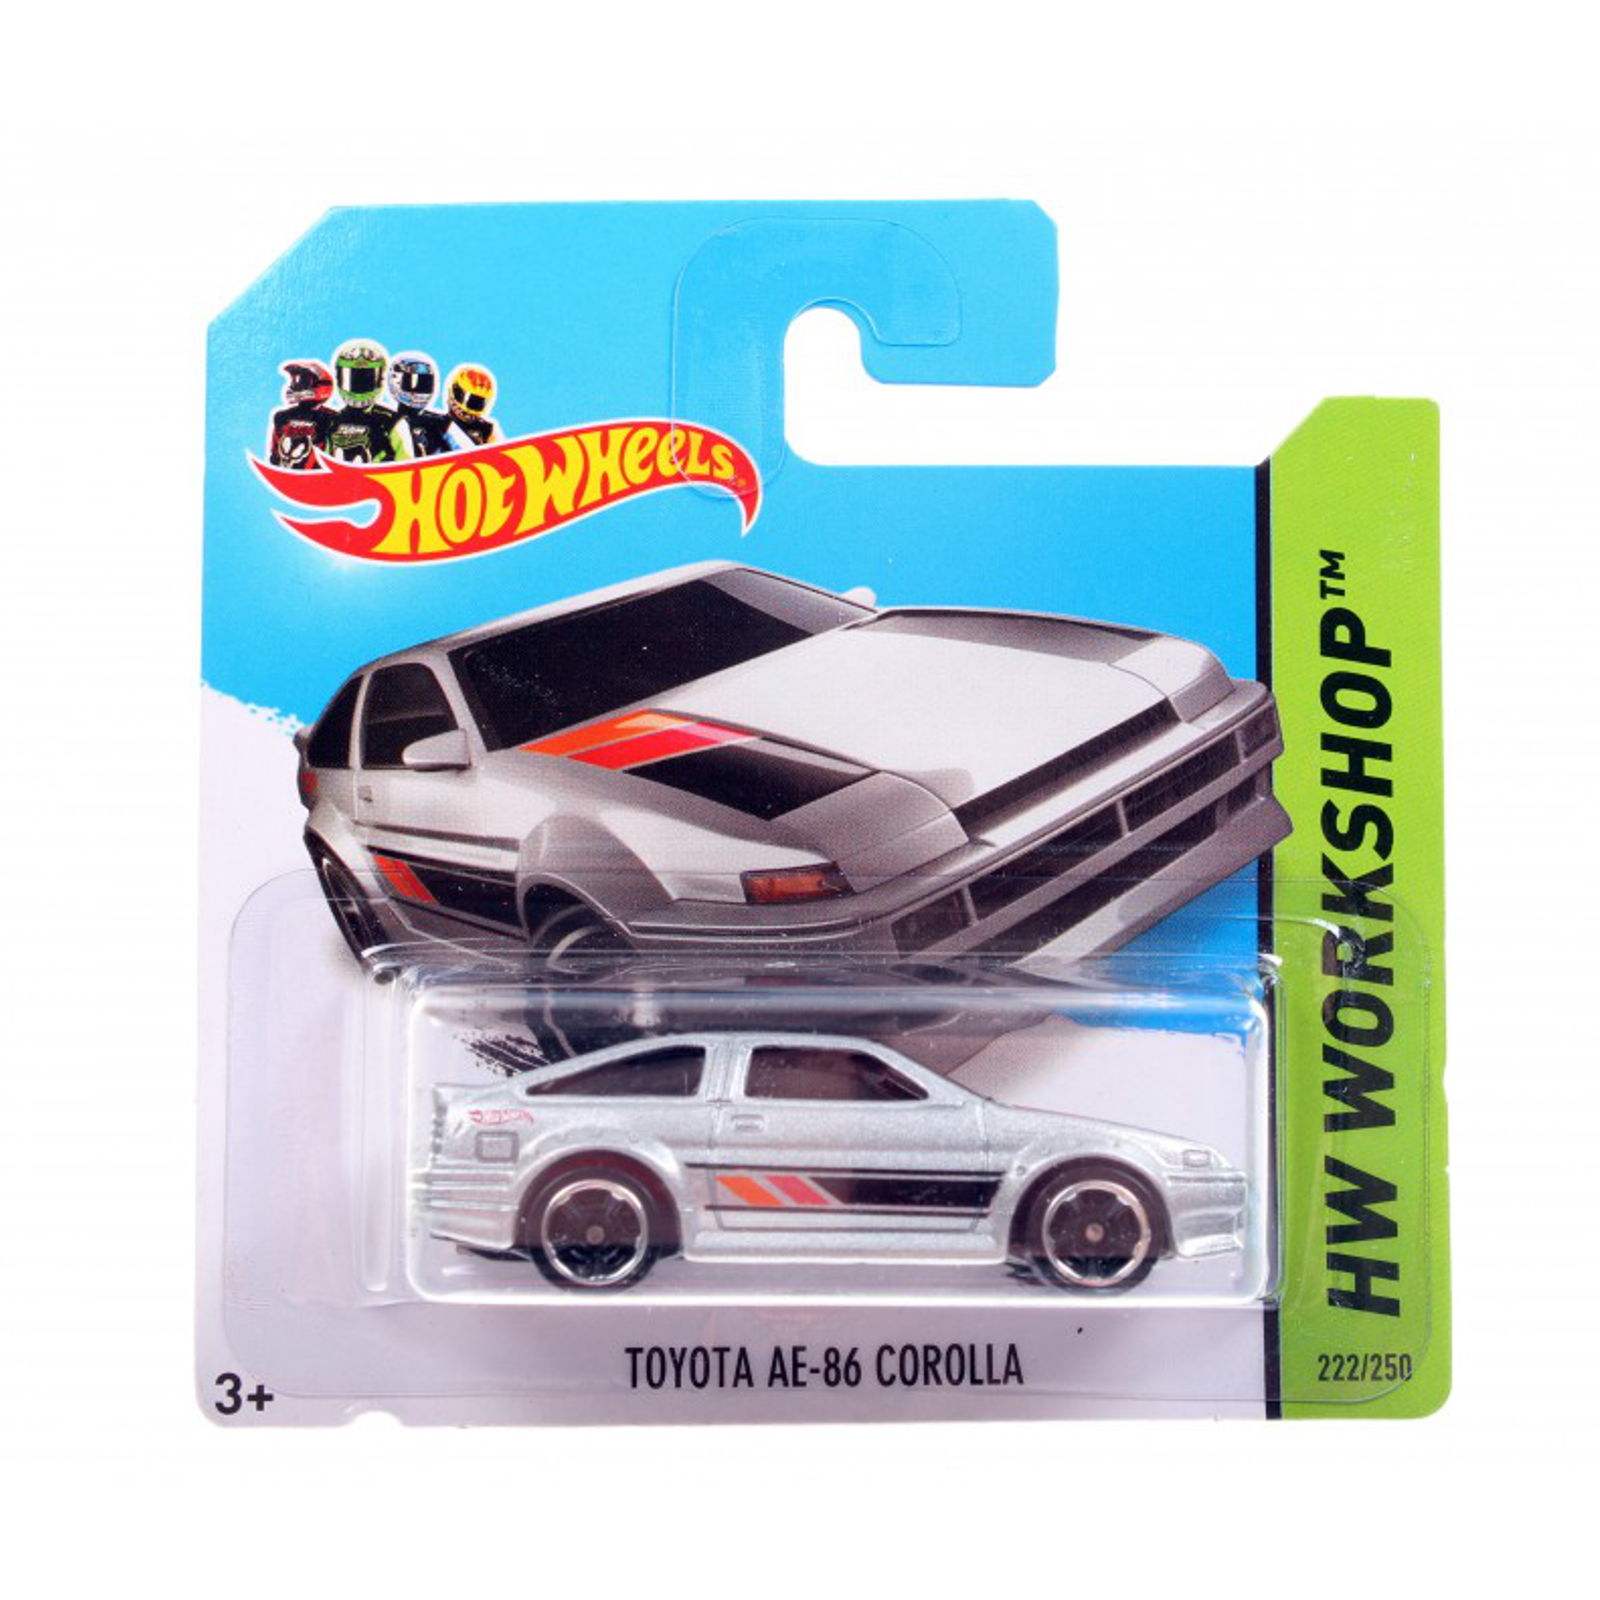 Мотогонщики Hot Wheels для треков Toyota AE-86 Corolla